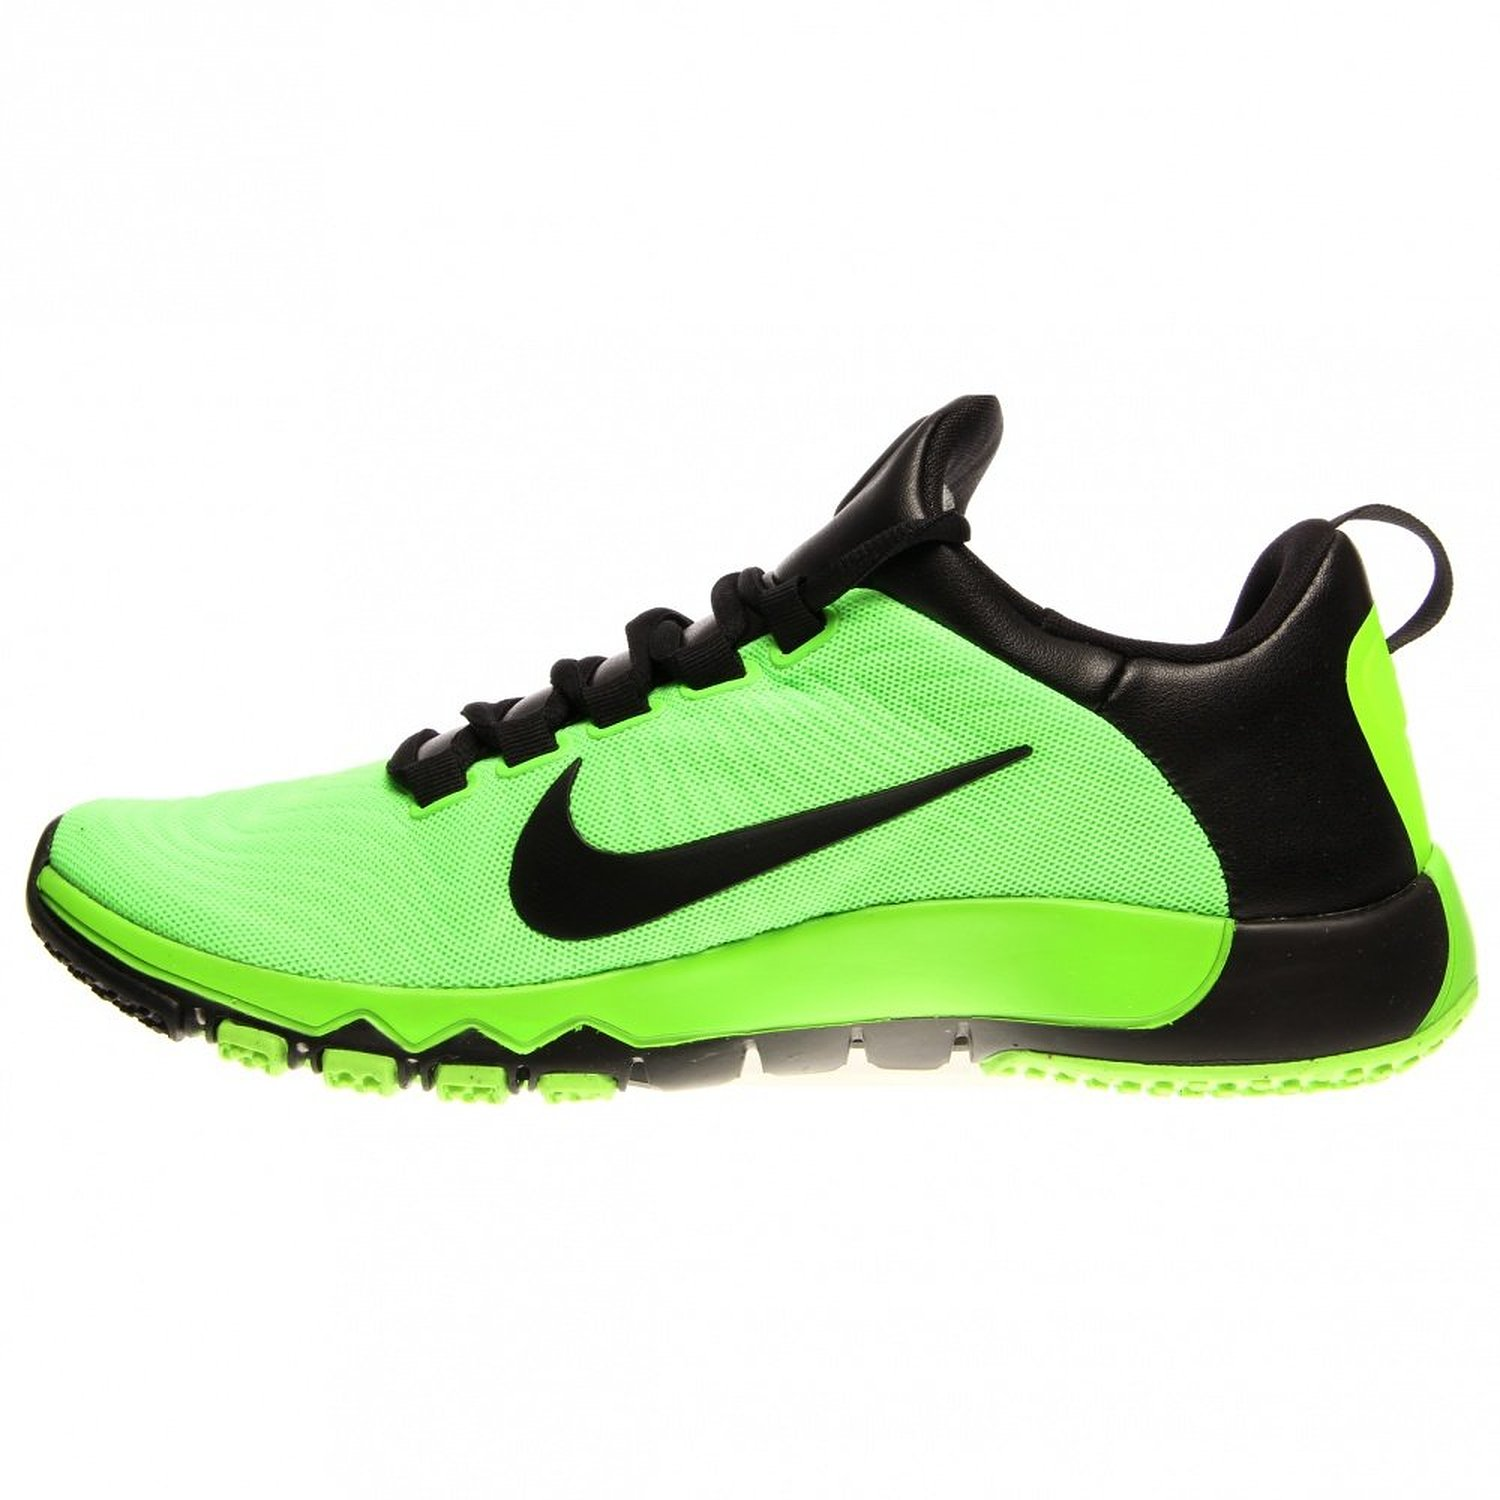 nike men 39 s free trainer 5 0 v5 training shoe ebay. Black Bedroom Furniture Sets. Home Design Ideas